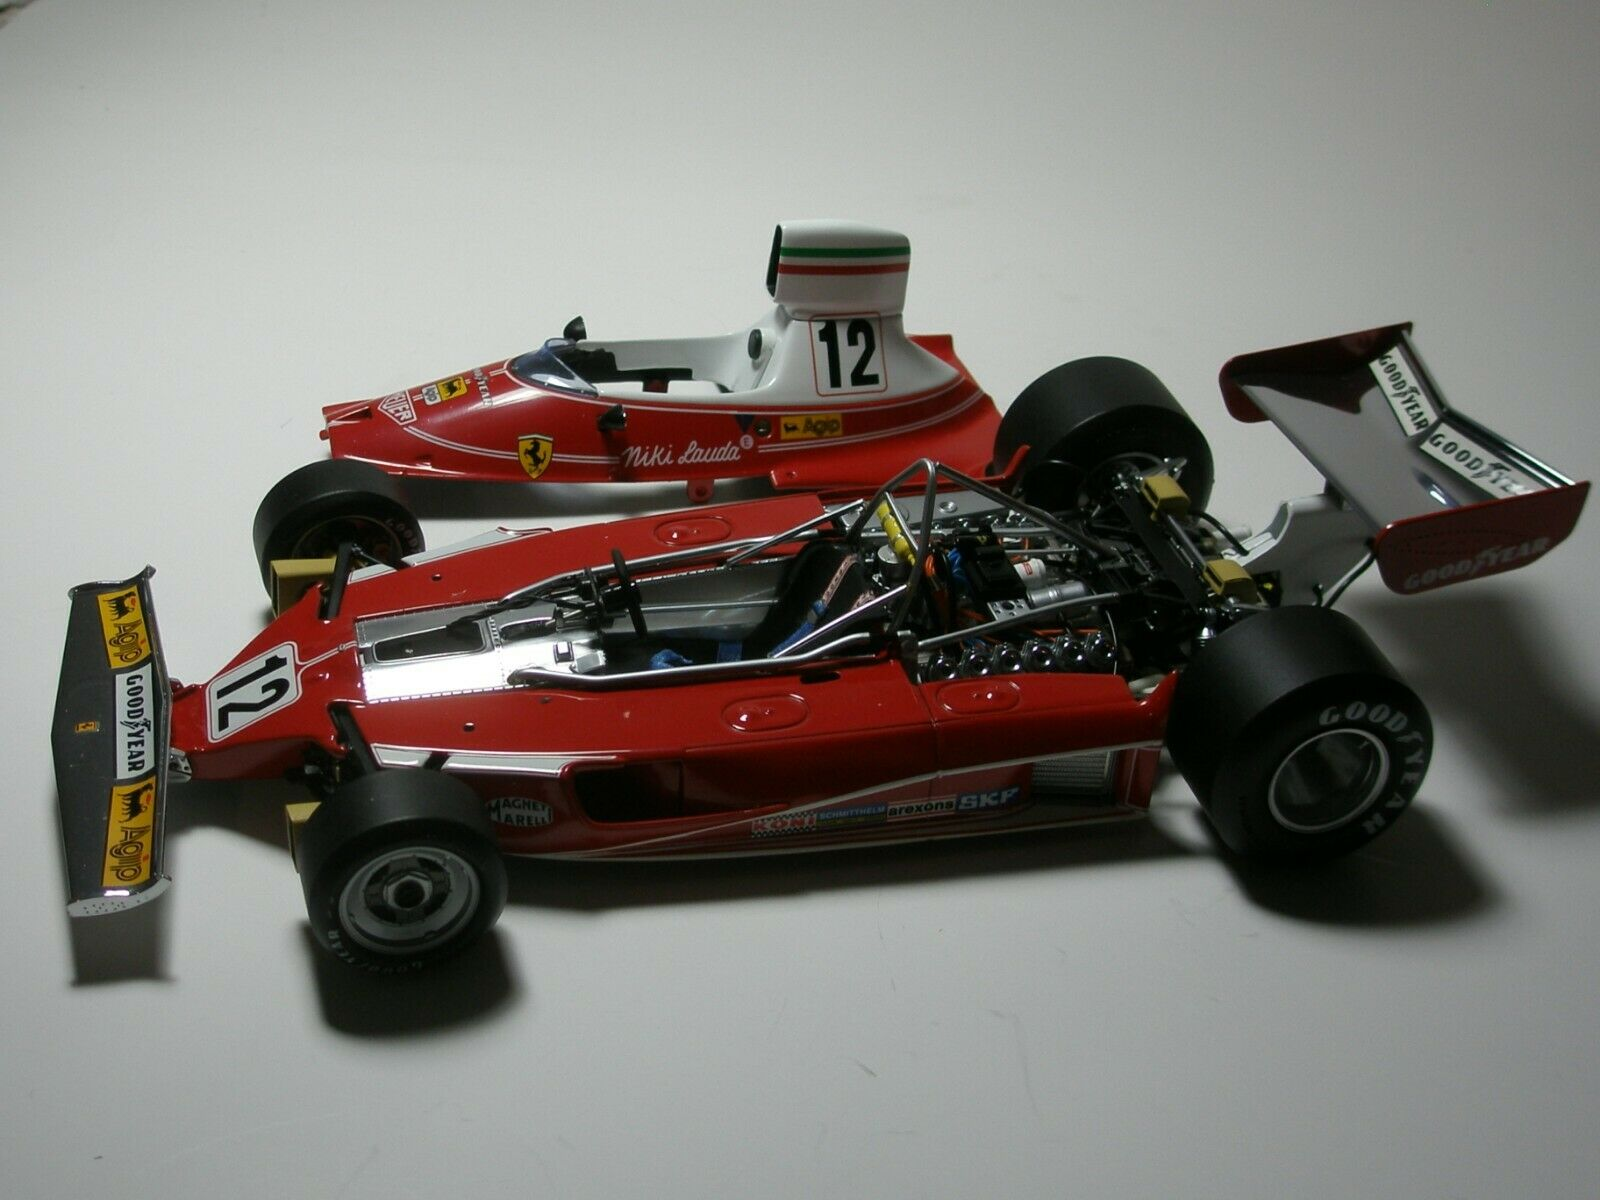 1 18 EXOTO FERRARI T 1975 - NIKI LAUDA(WORLD CHAMPION)